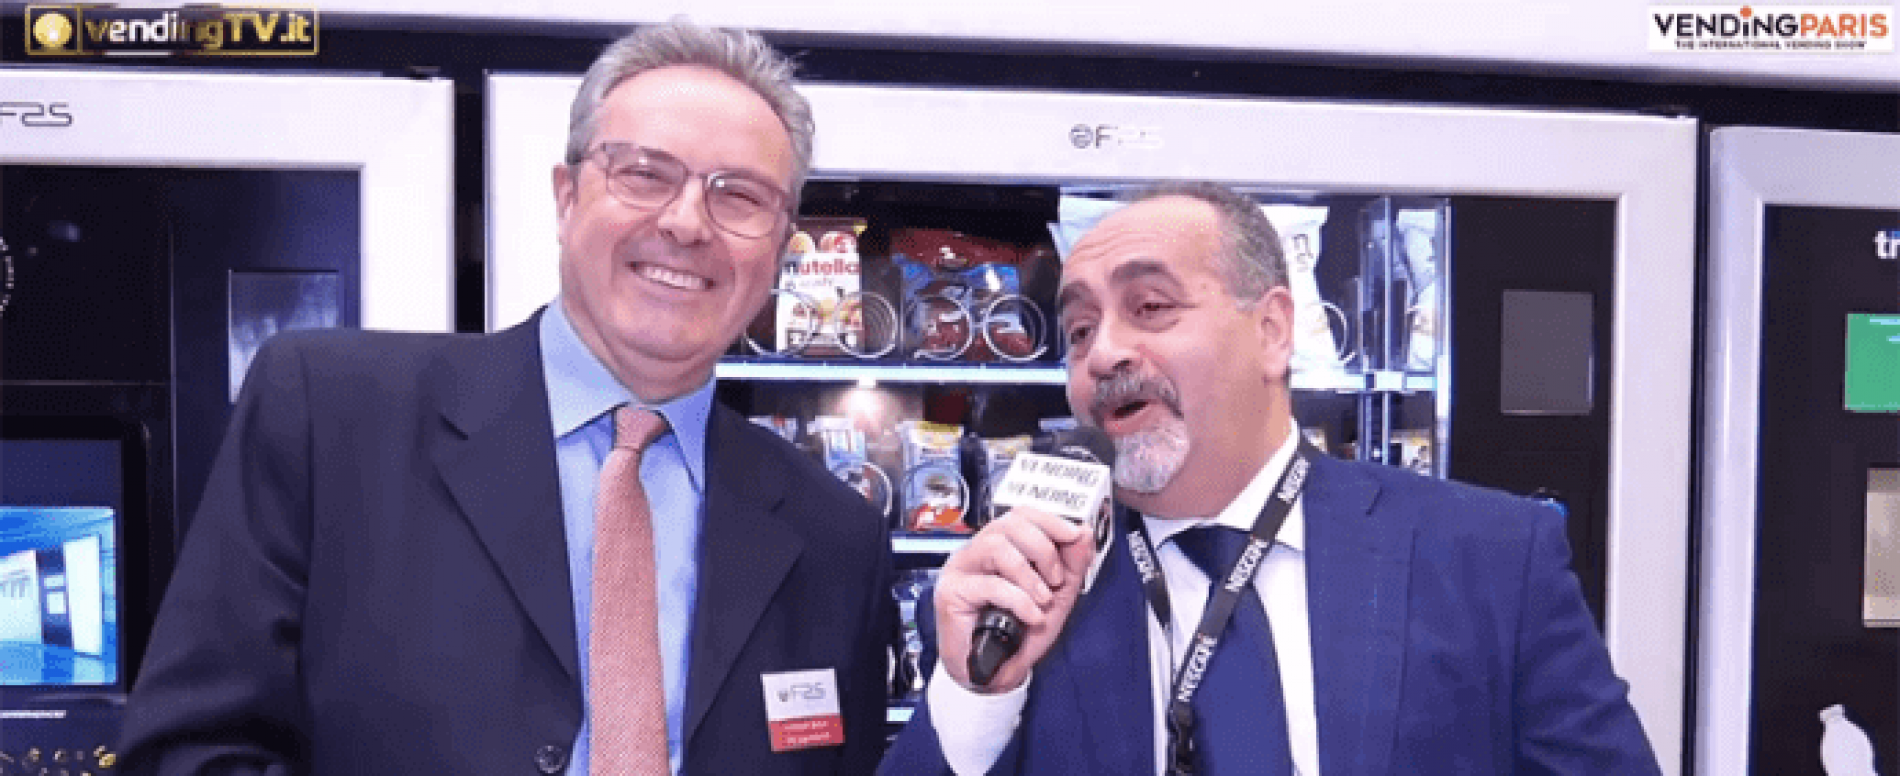 Vending Paris 2019. Intervista allo stand FAS International